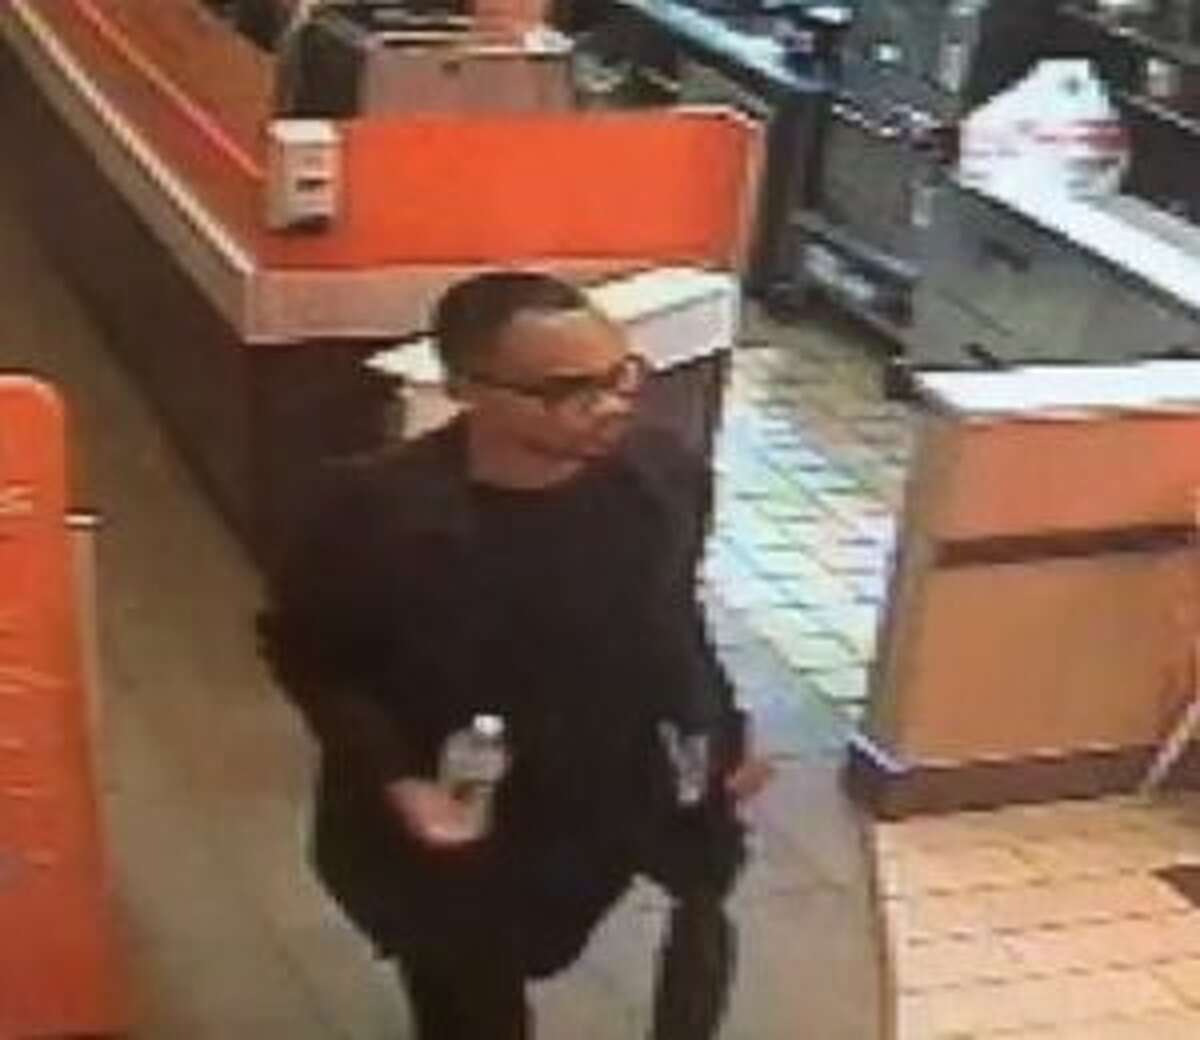 New Canaan Police suspect this man of asking two girls to join him in the bathroom at Dunkin' at 7:15 p.m. Thursday, March 21, and ask anyone who recognizes him to all them at 203-594-3500.